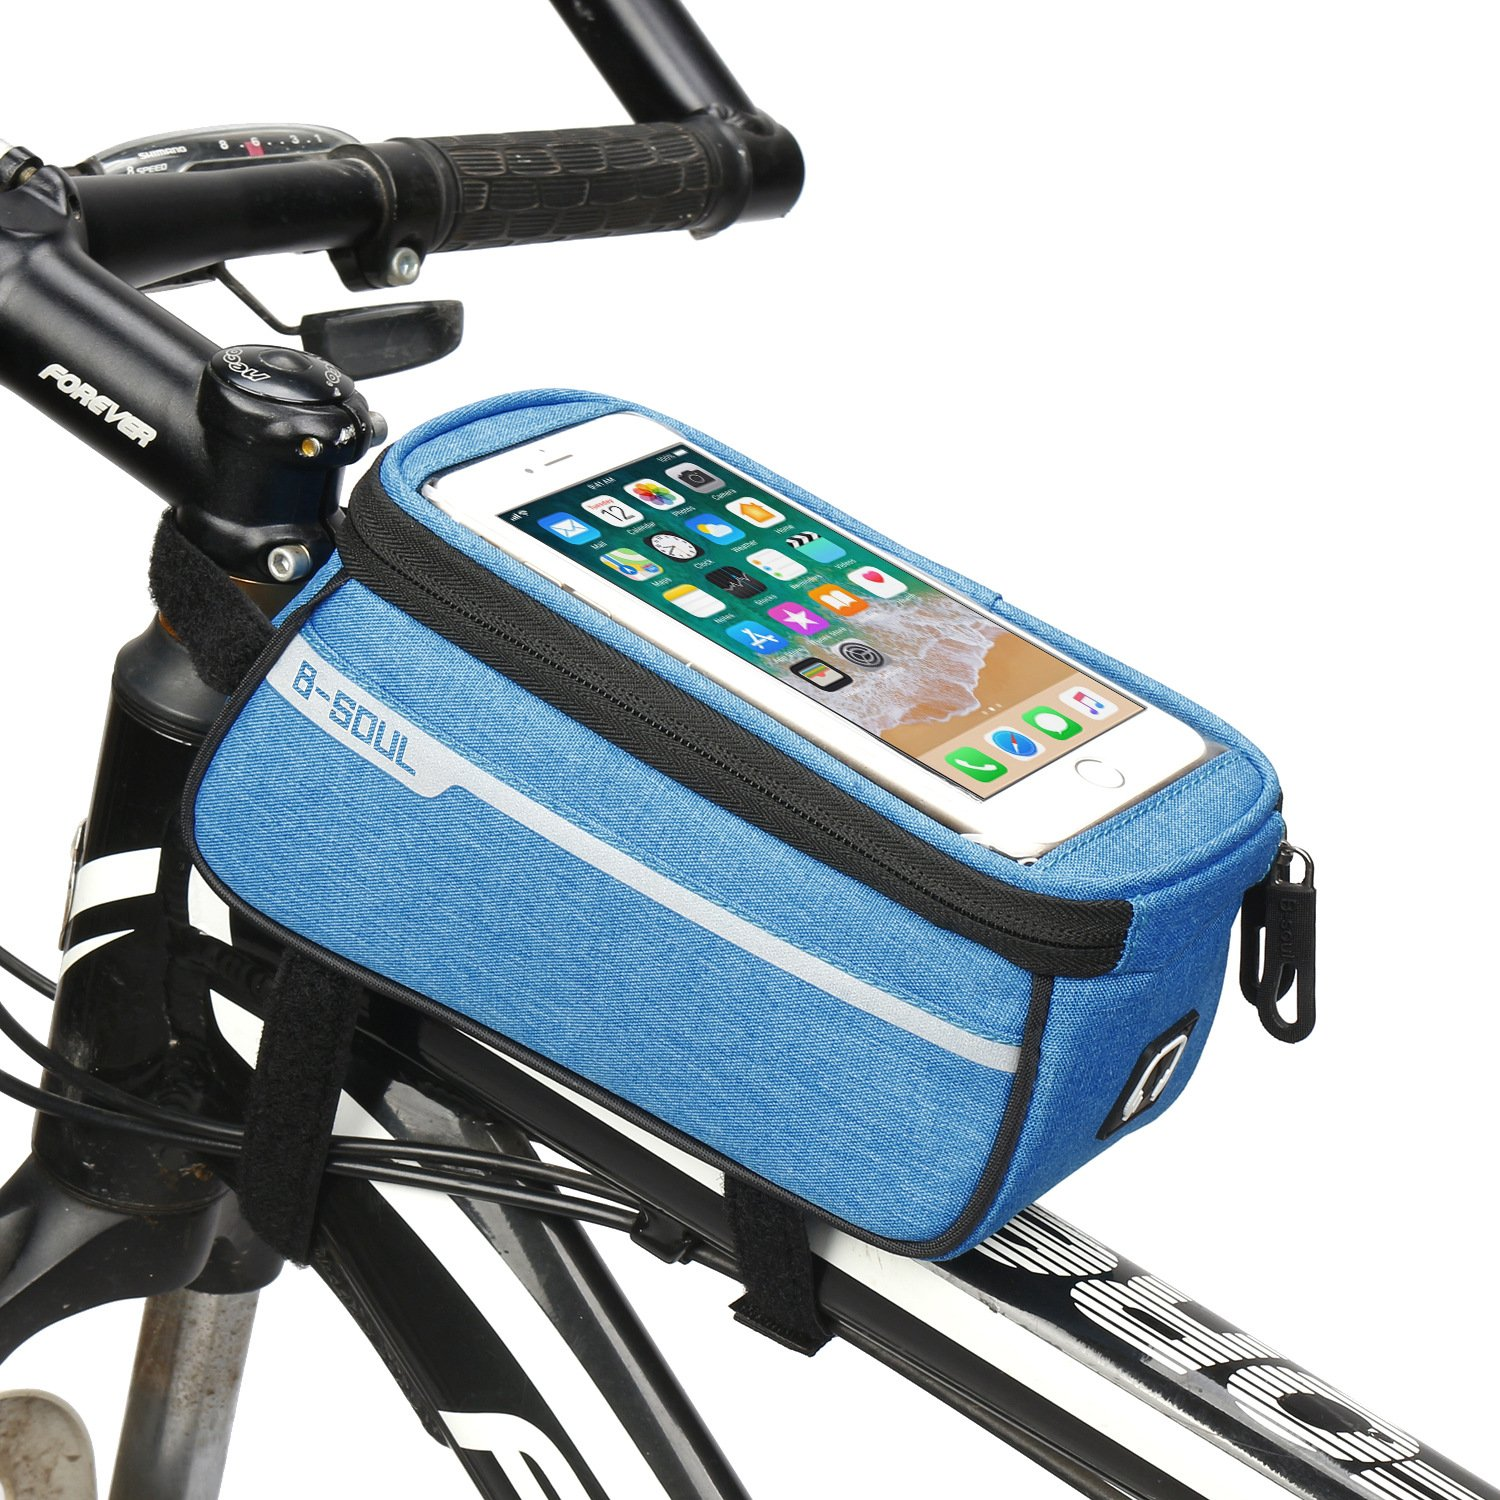 AINAAN Bicycle Front Beam Waterproof, Mountain Bike Riding Storage Bag, Oversized 6.0-inch Mobile Phone Collection, Upgrade, Blue